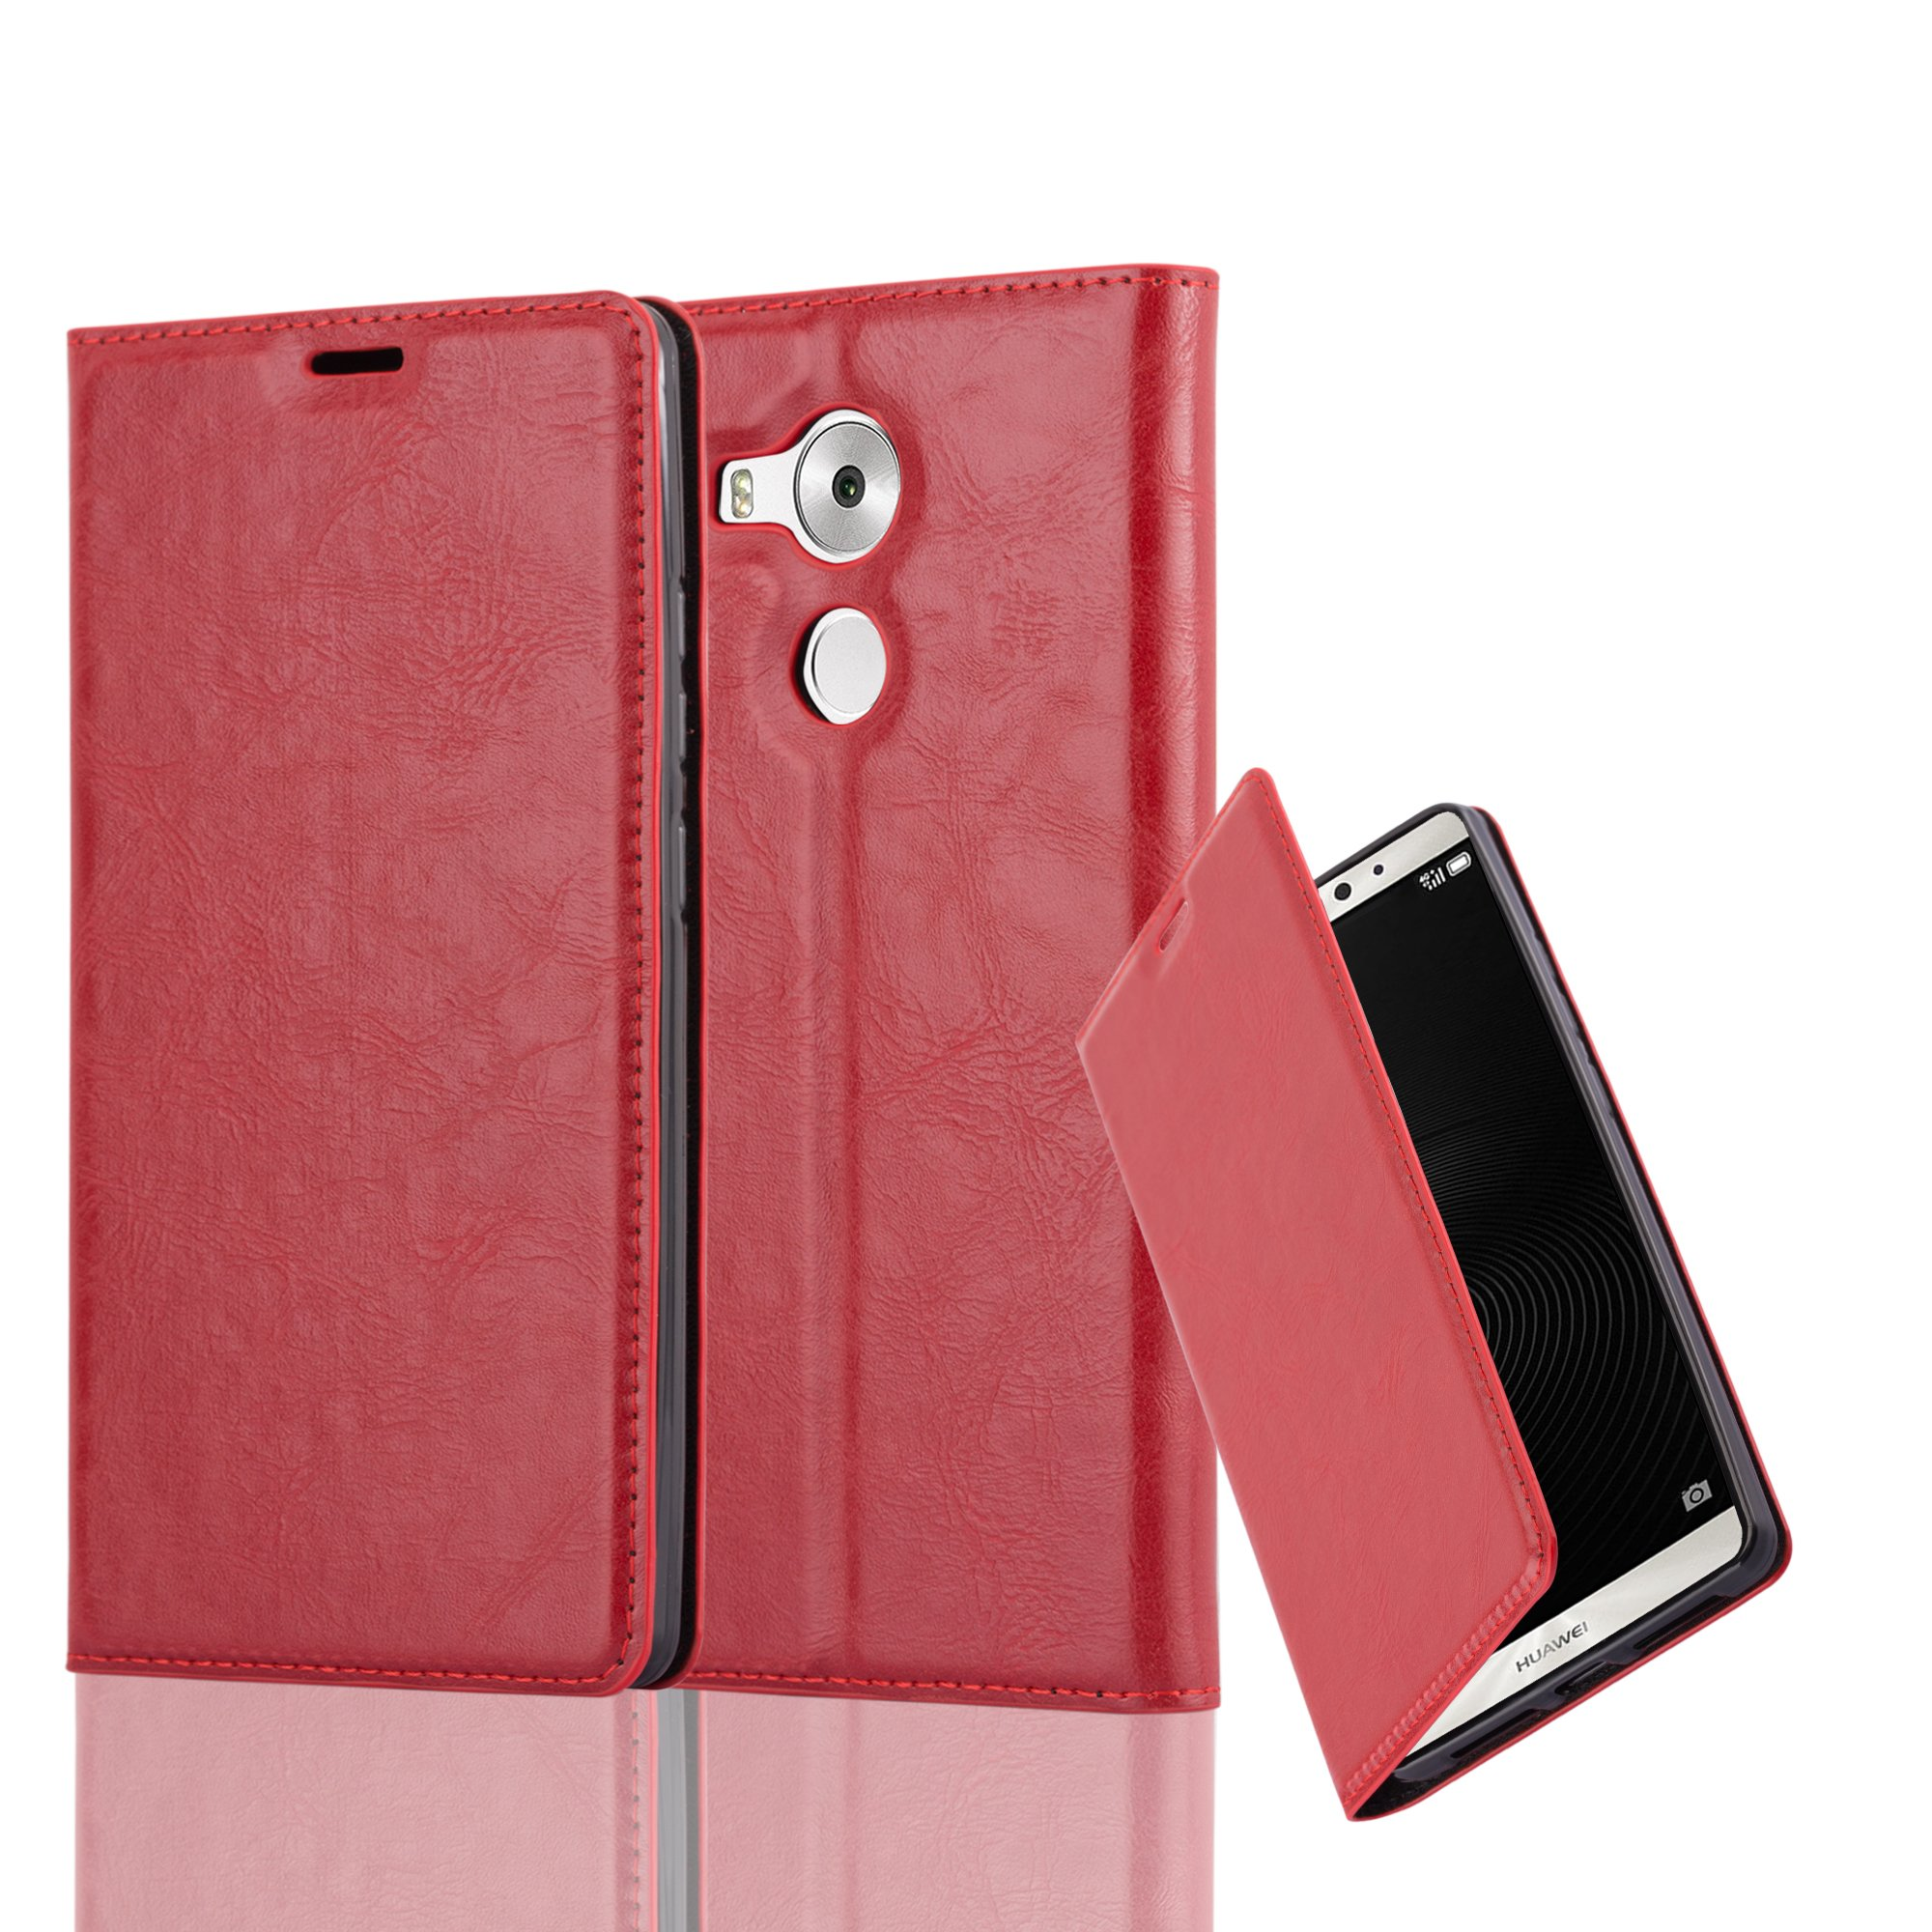 Cadorabo Case works with Huawei MATE 8 Book Case in APPLE RED (Design INVISIBLE CLOSURE) – with Magnetic Closure, Stand Function and Card Slot – Wallet Case Etui Cover PU Leather